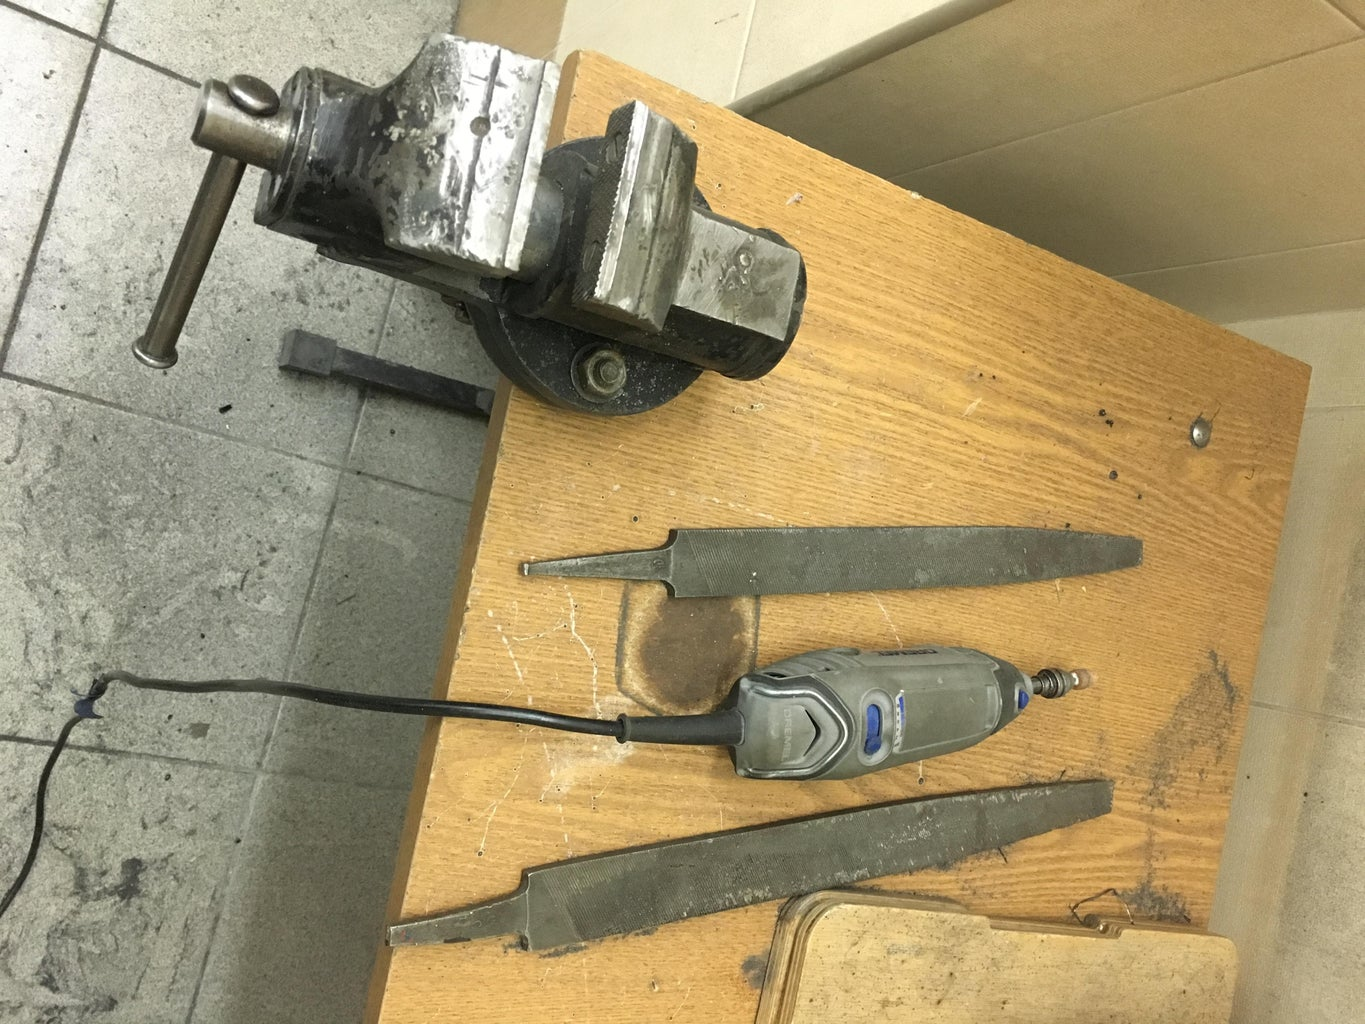 Tools and Material